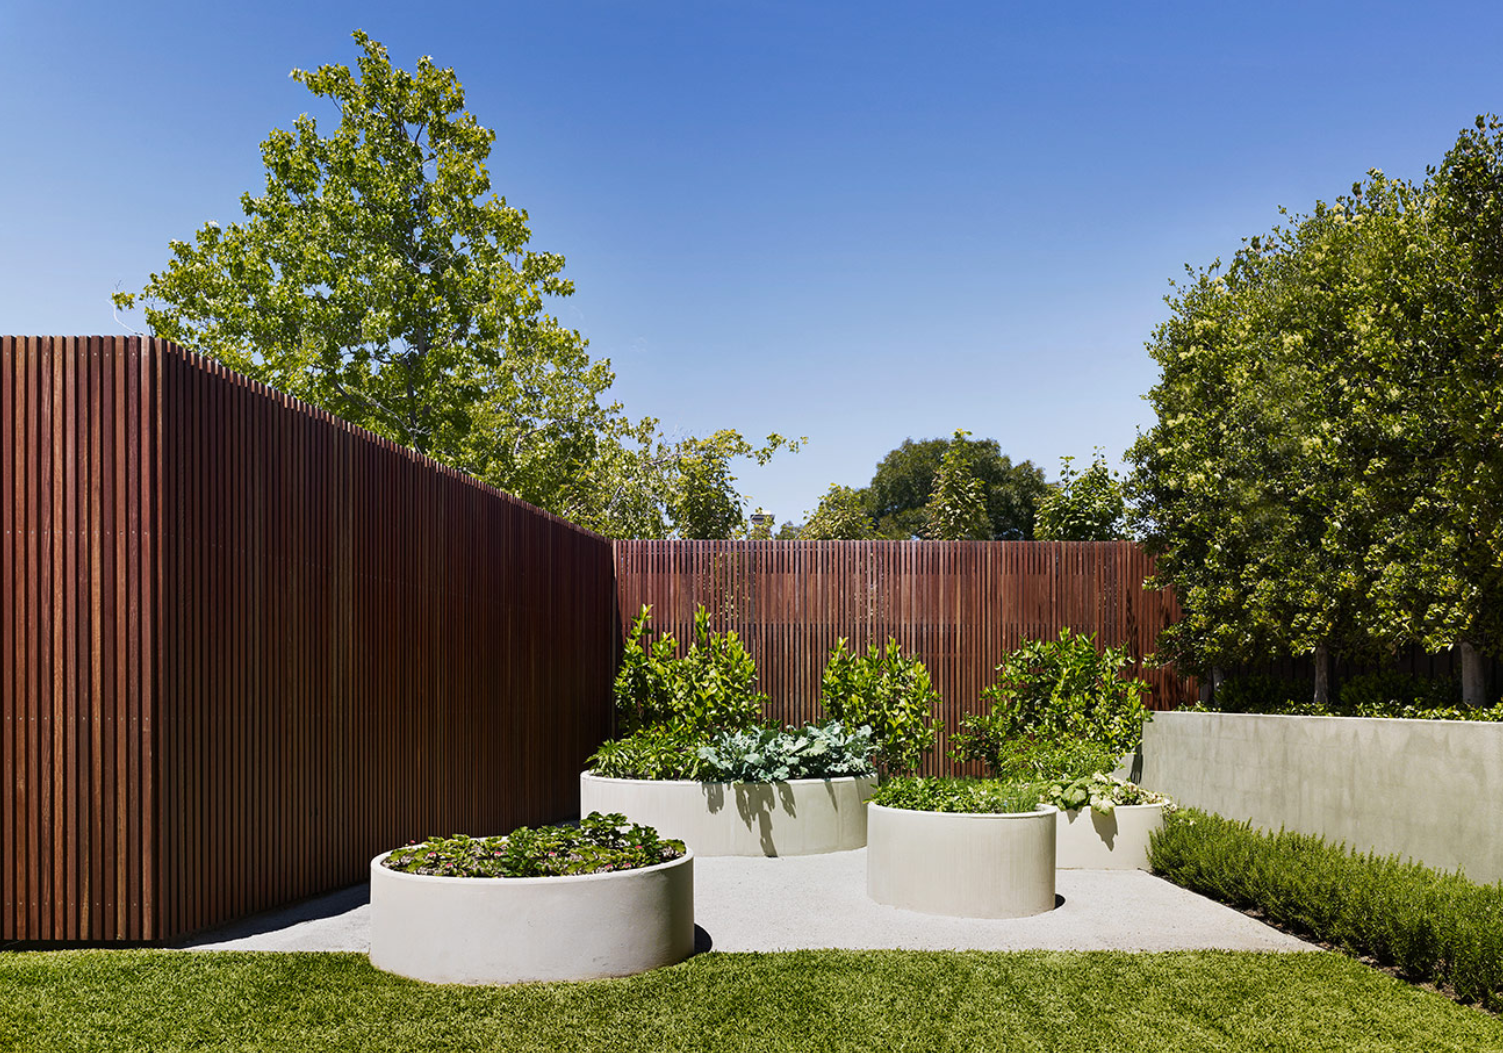 Jack merlo design more outdoor garden ideas landscape design gardening - Jack Merlo Everything About Sutherland Rd Is Fantastic Here I Love The Circular Planters